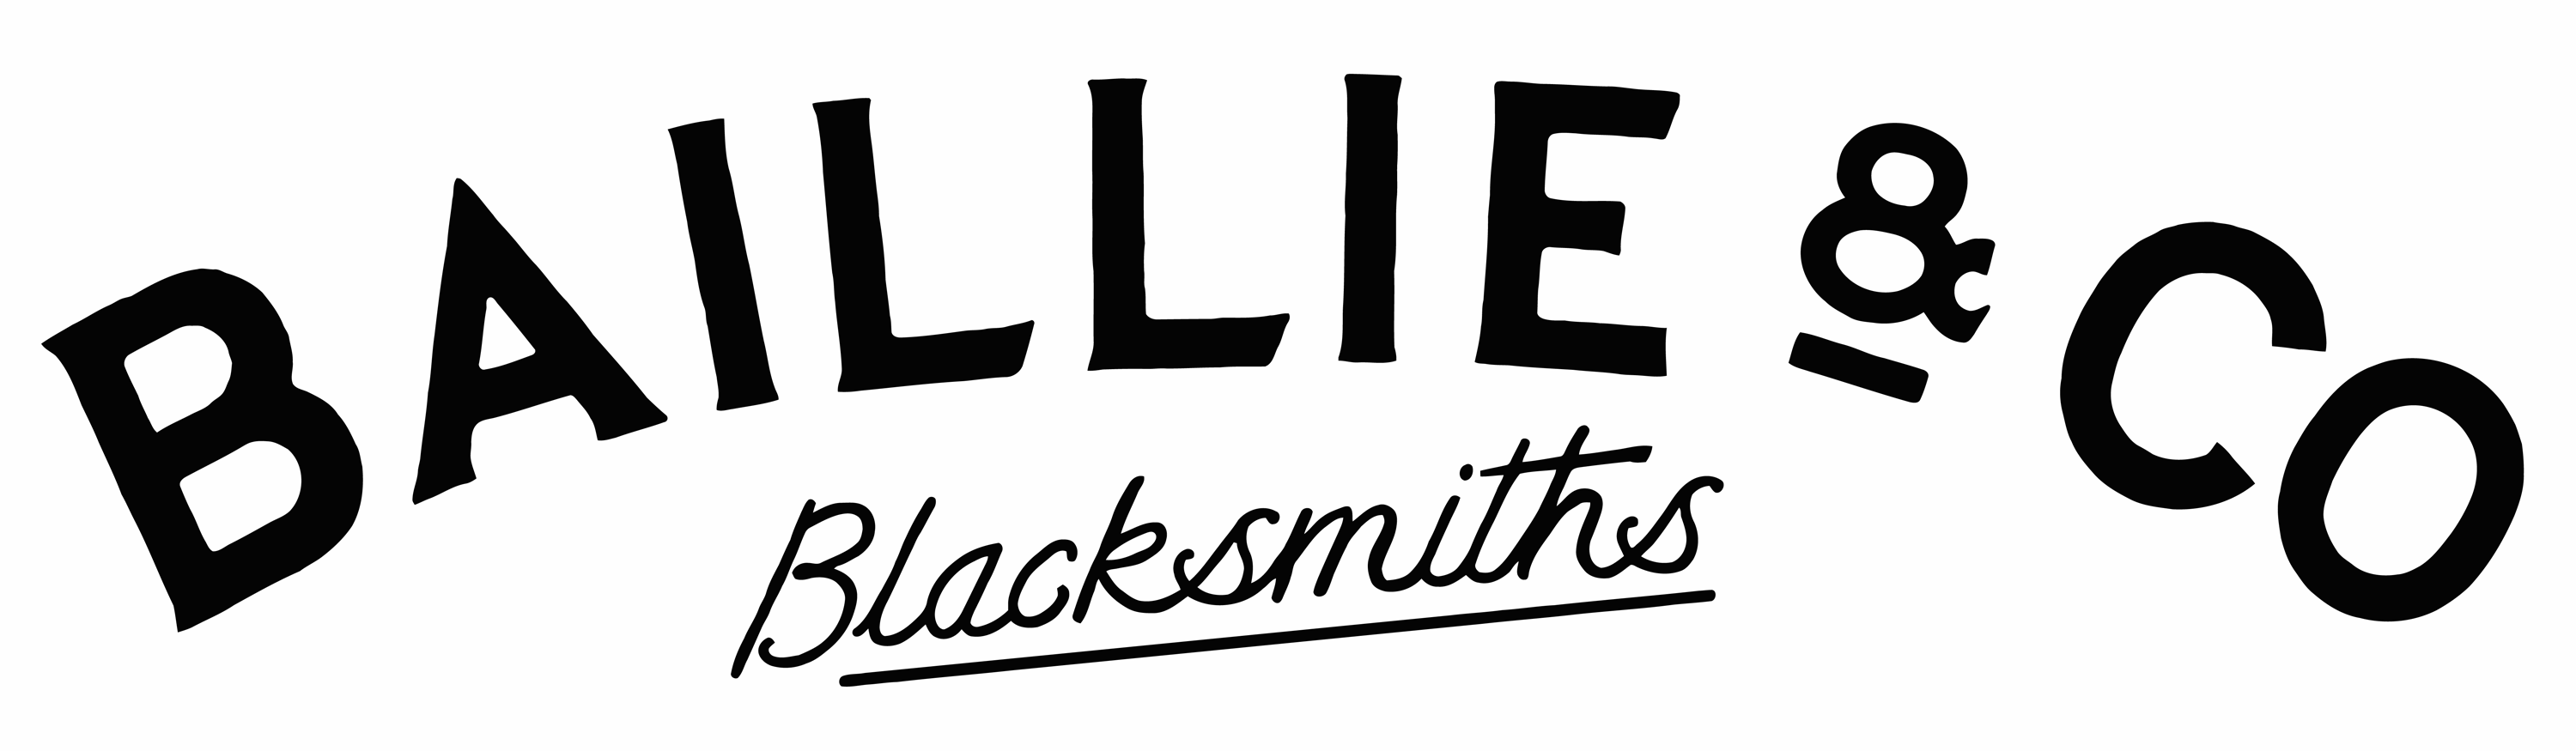 photography Archives - Baillie & Co Blacksmiths